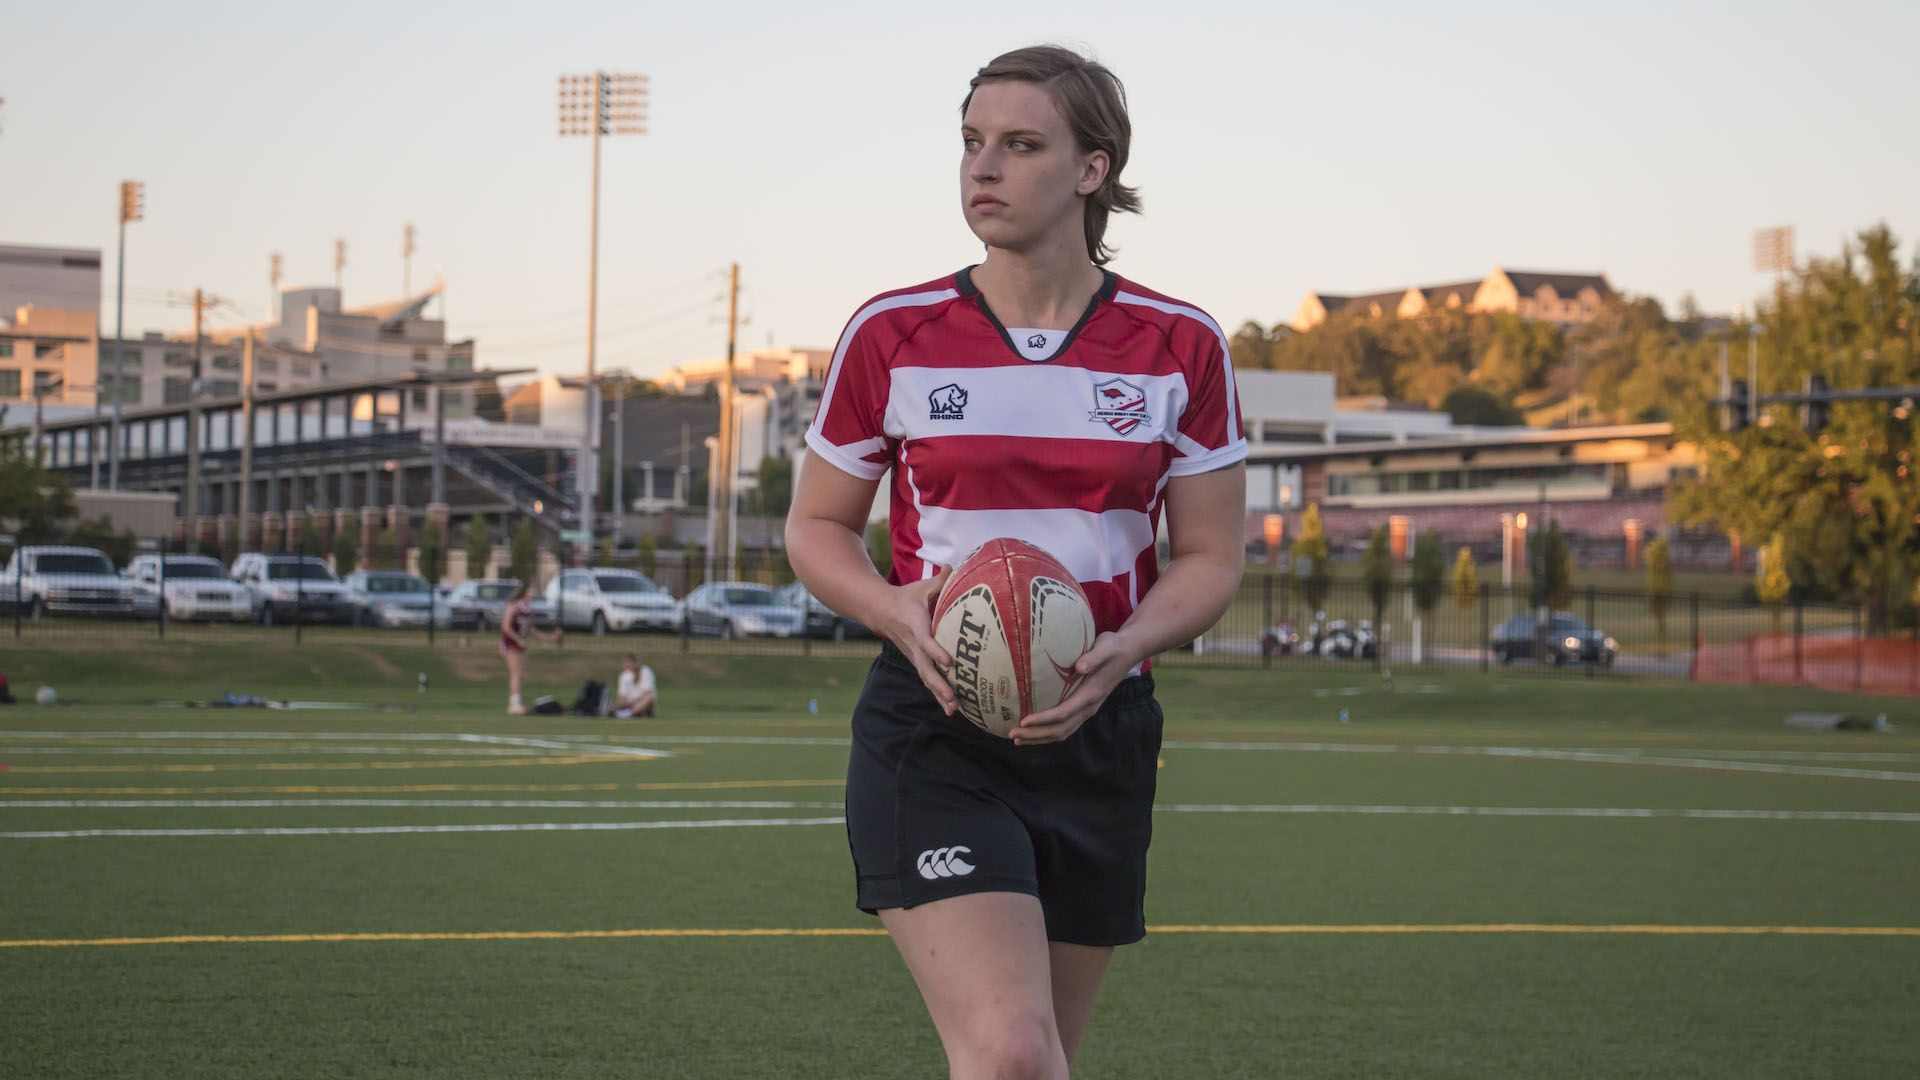 Women's rugby team member holding rugby ball